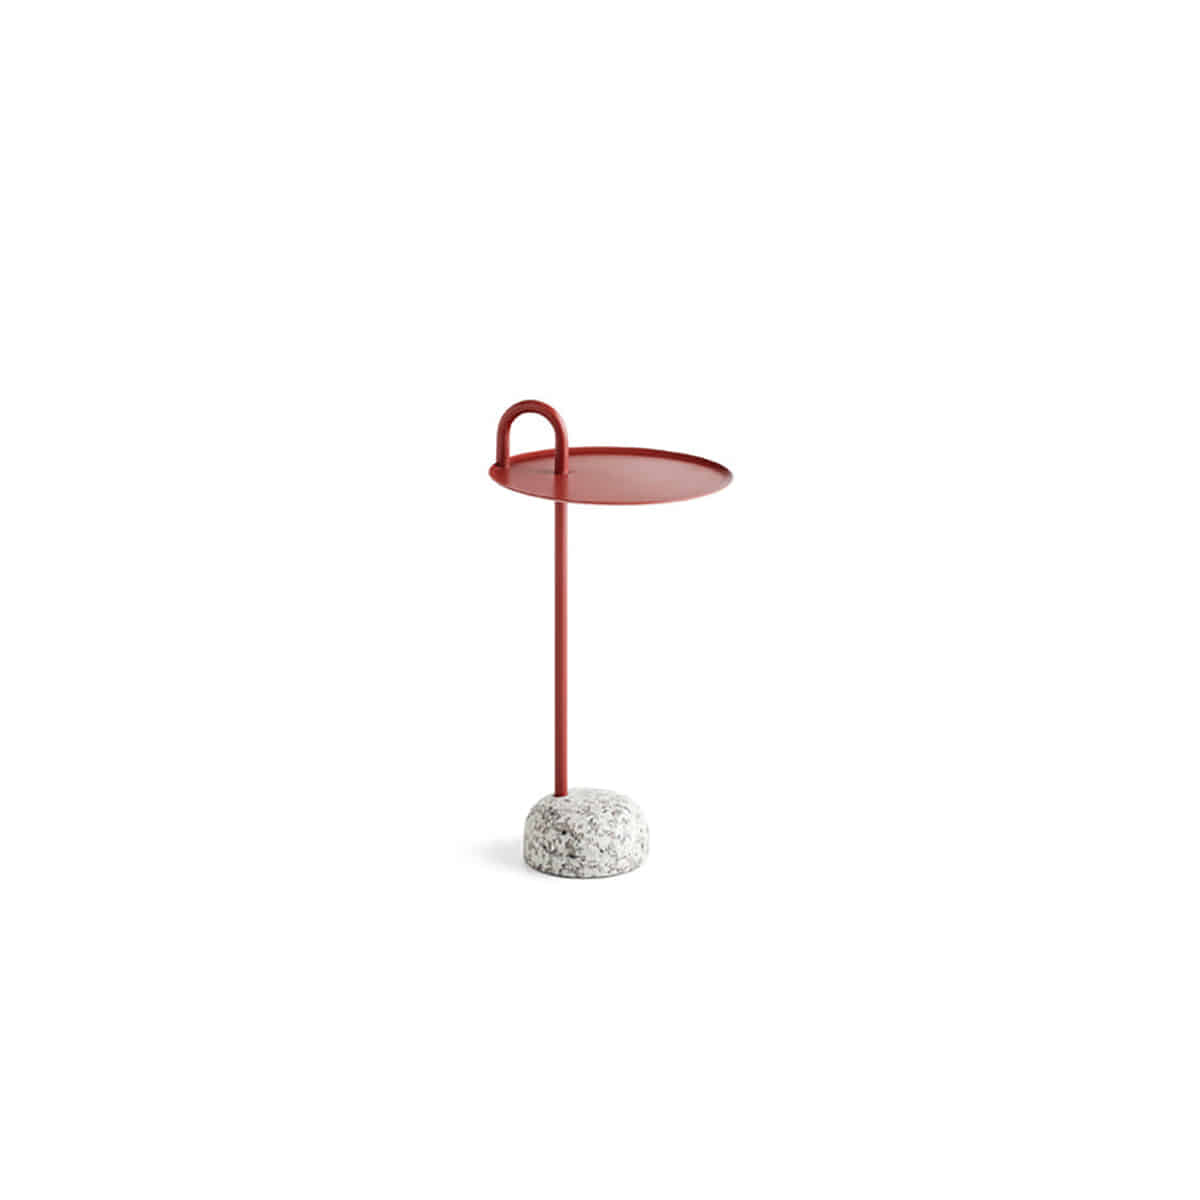 [HAY]Bowler Table - Tile red